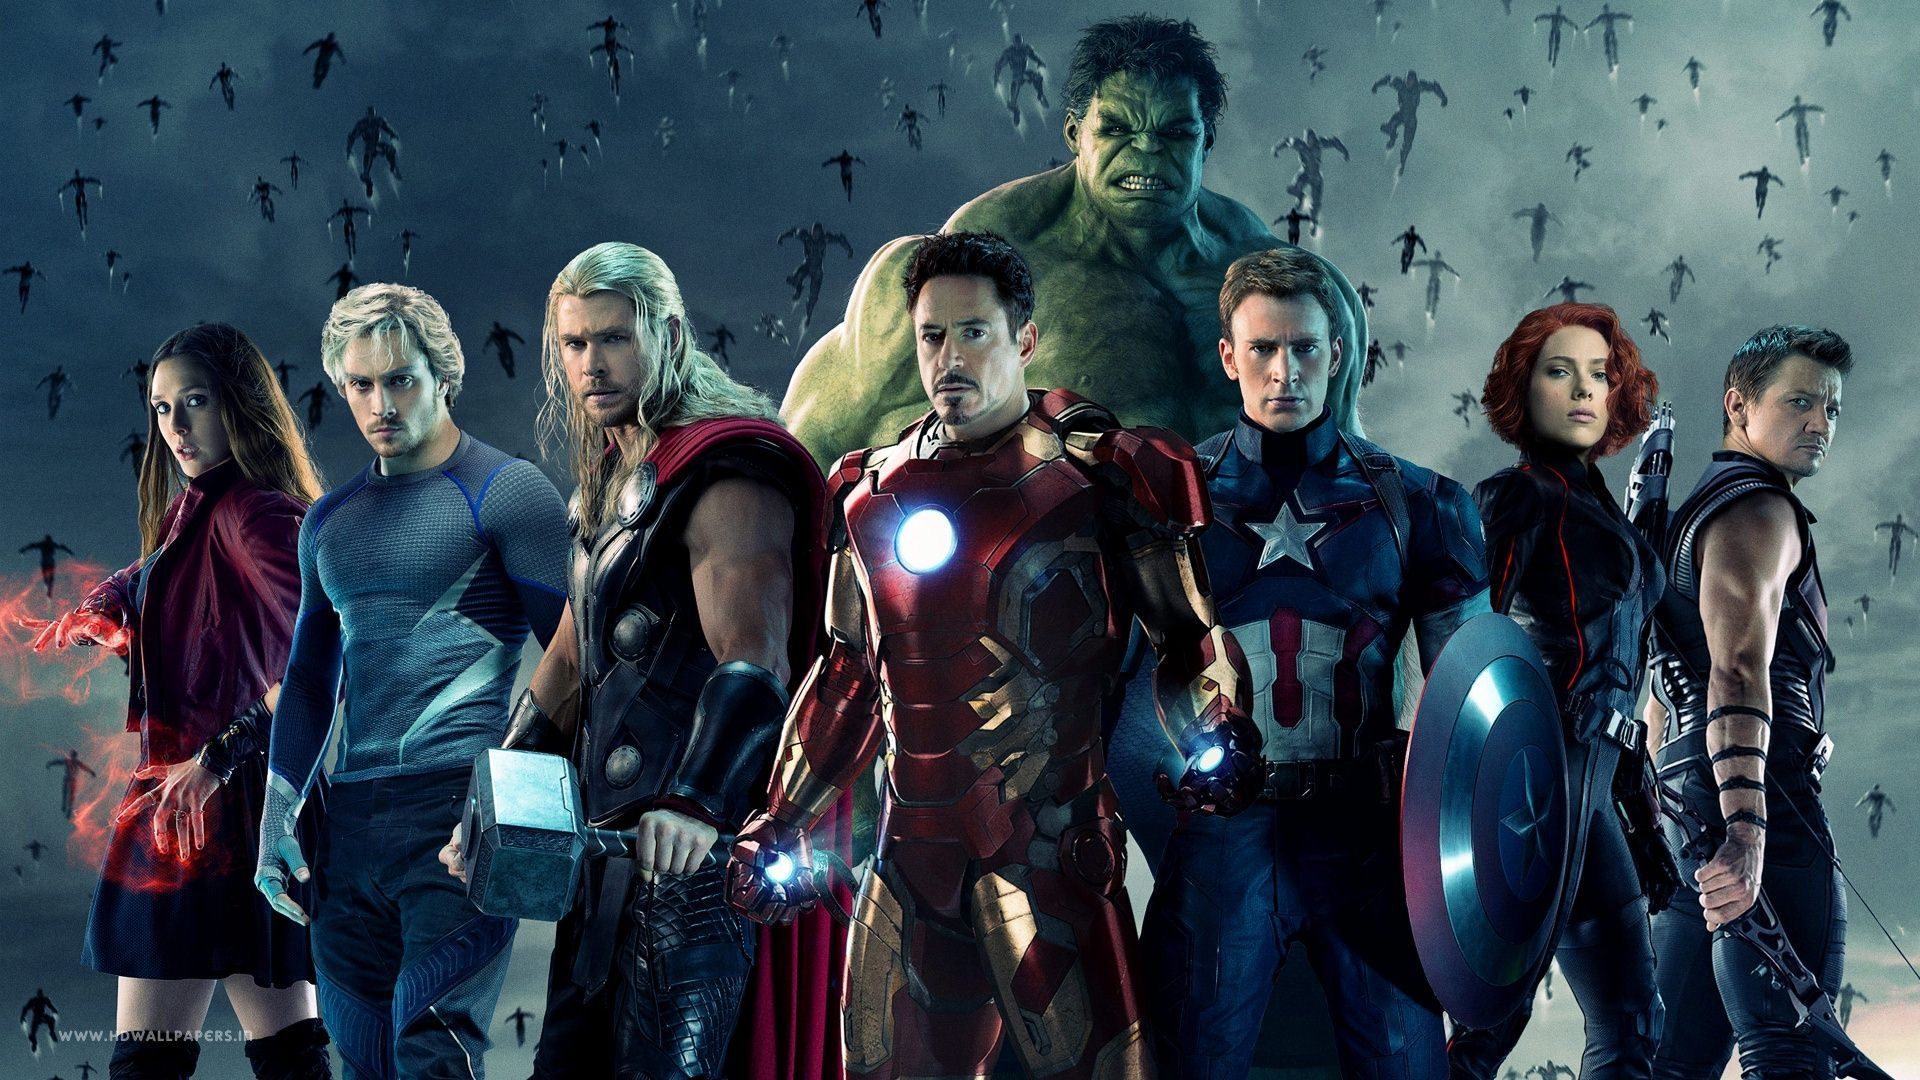 hd avengers live wallpaper android full download hd desktop | All Wallpapers | Ultron movie ...